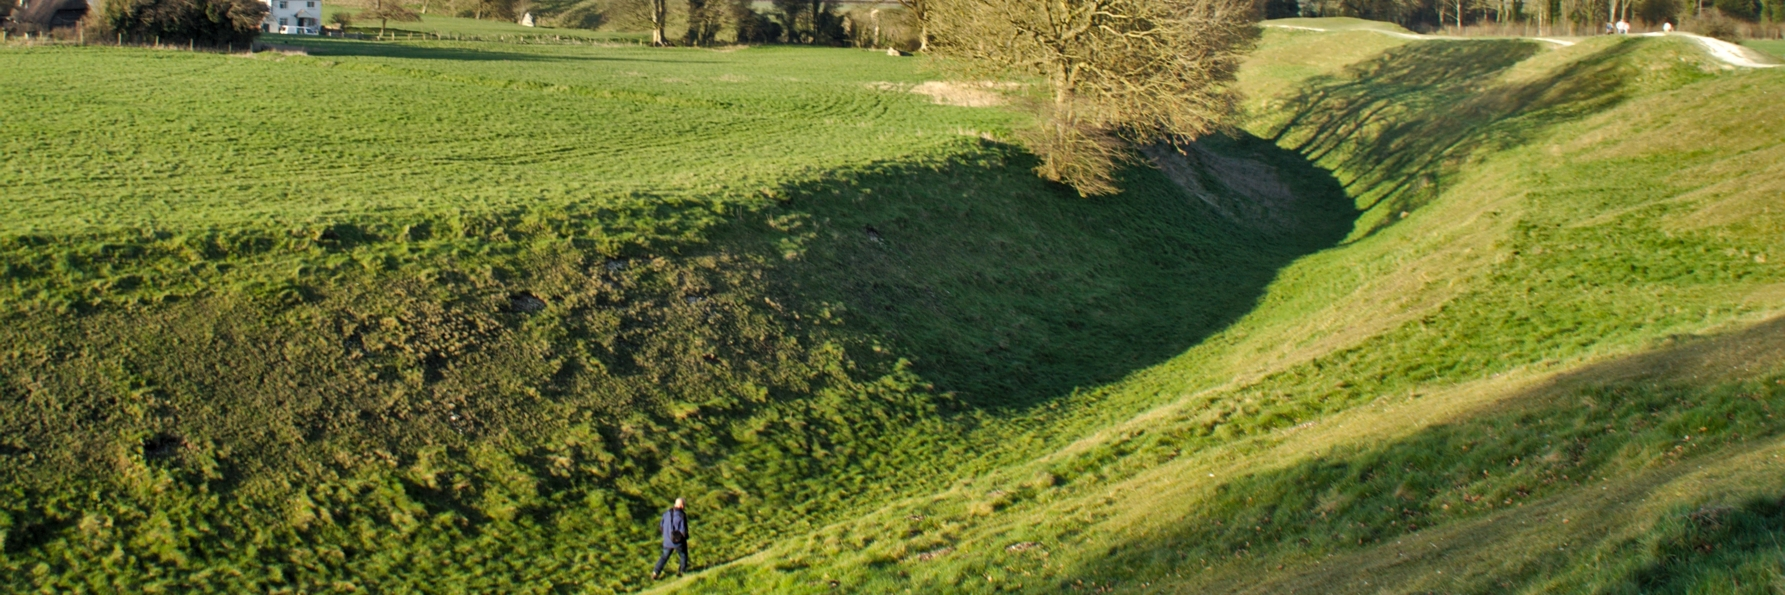 Photo of Ditch at the Avebury henge (Wiltshire, United Kingdom), an outsanding example of the otherwise widely spread Neolithic ditches